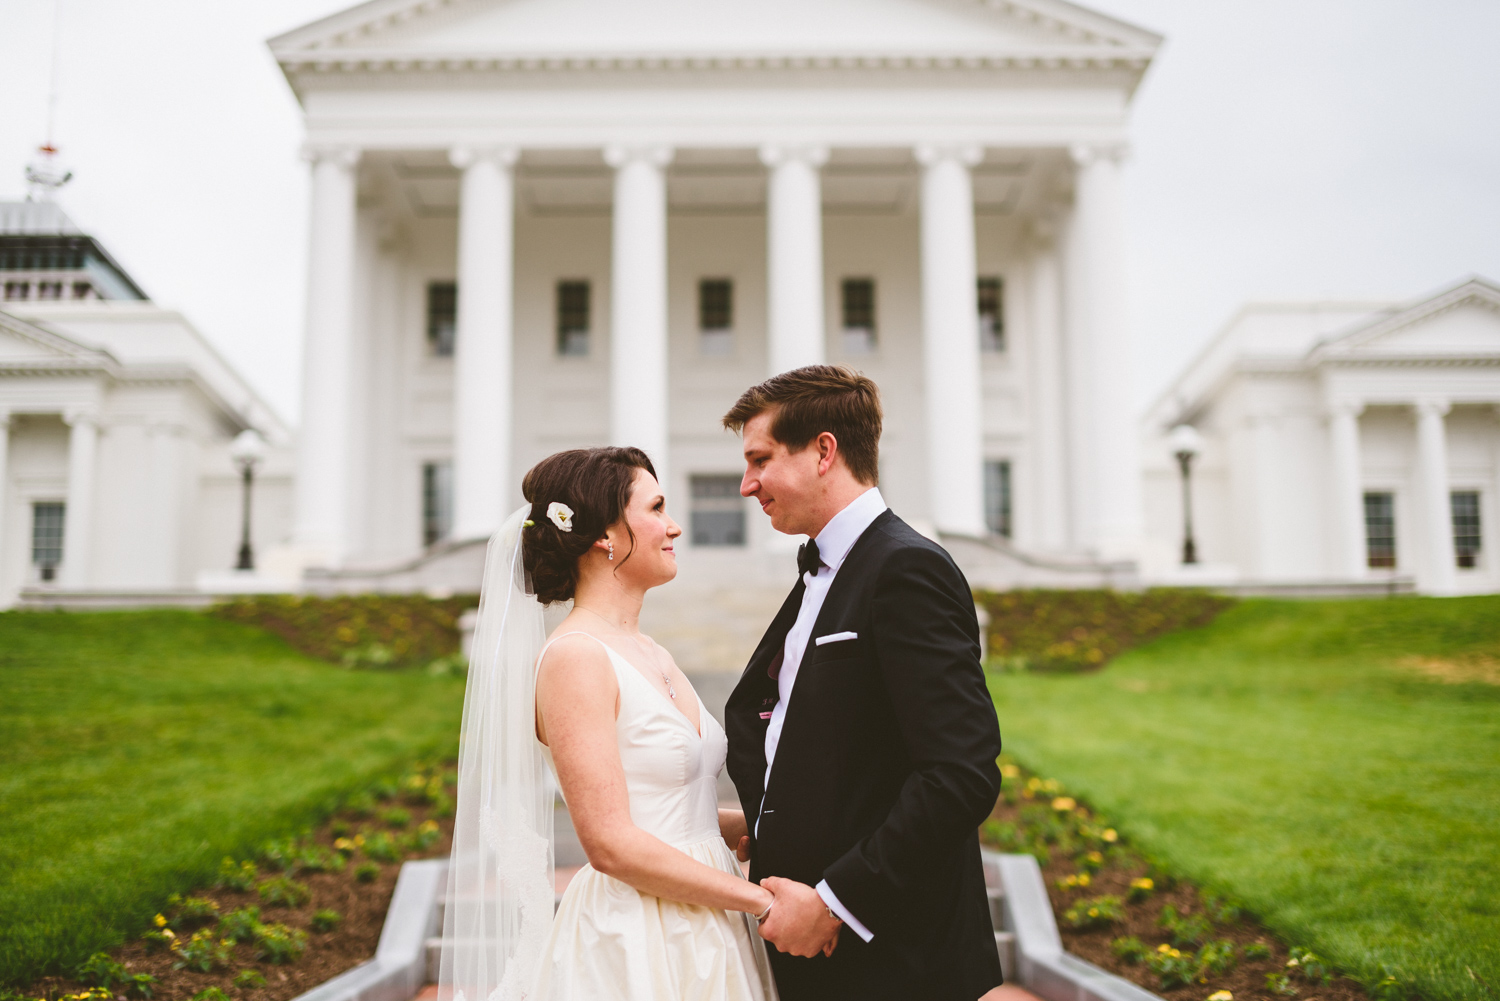 008 - bride and groom in front of the virginia state capitol in richmond virginia.jpg